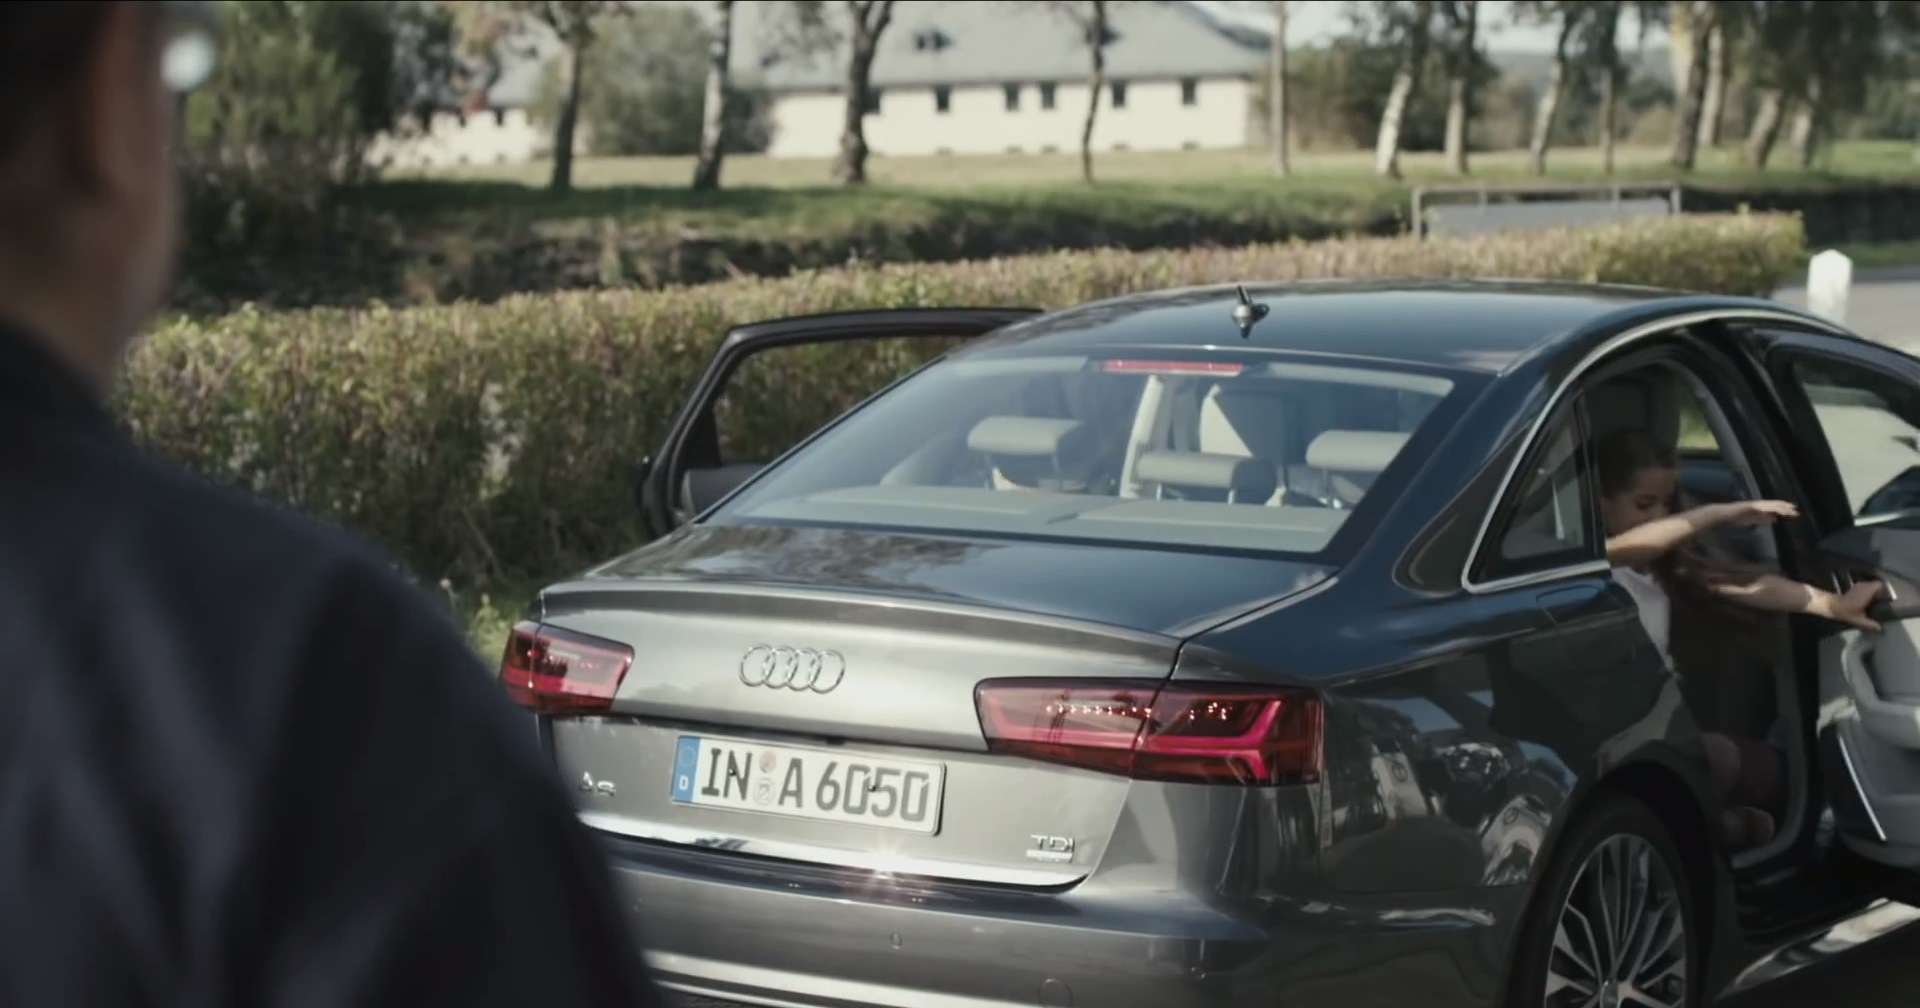 audi-a6-ultra-commercial-efficiency-is-p